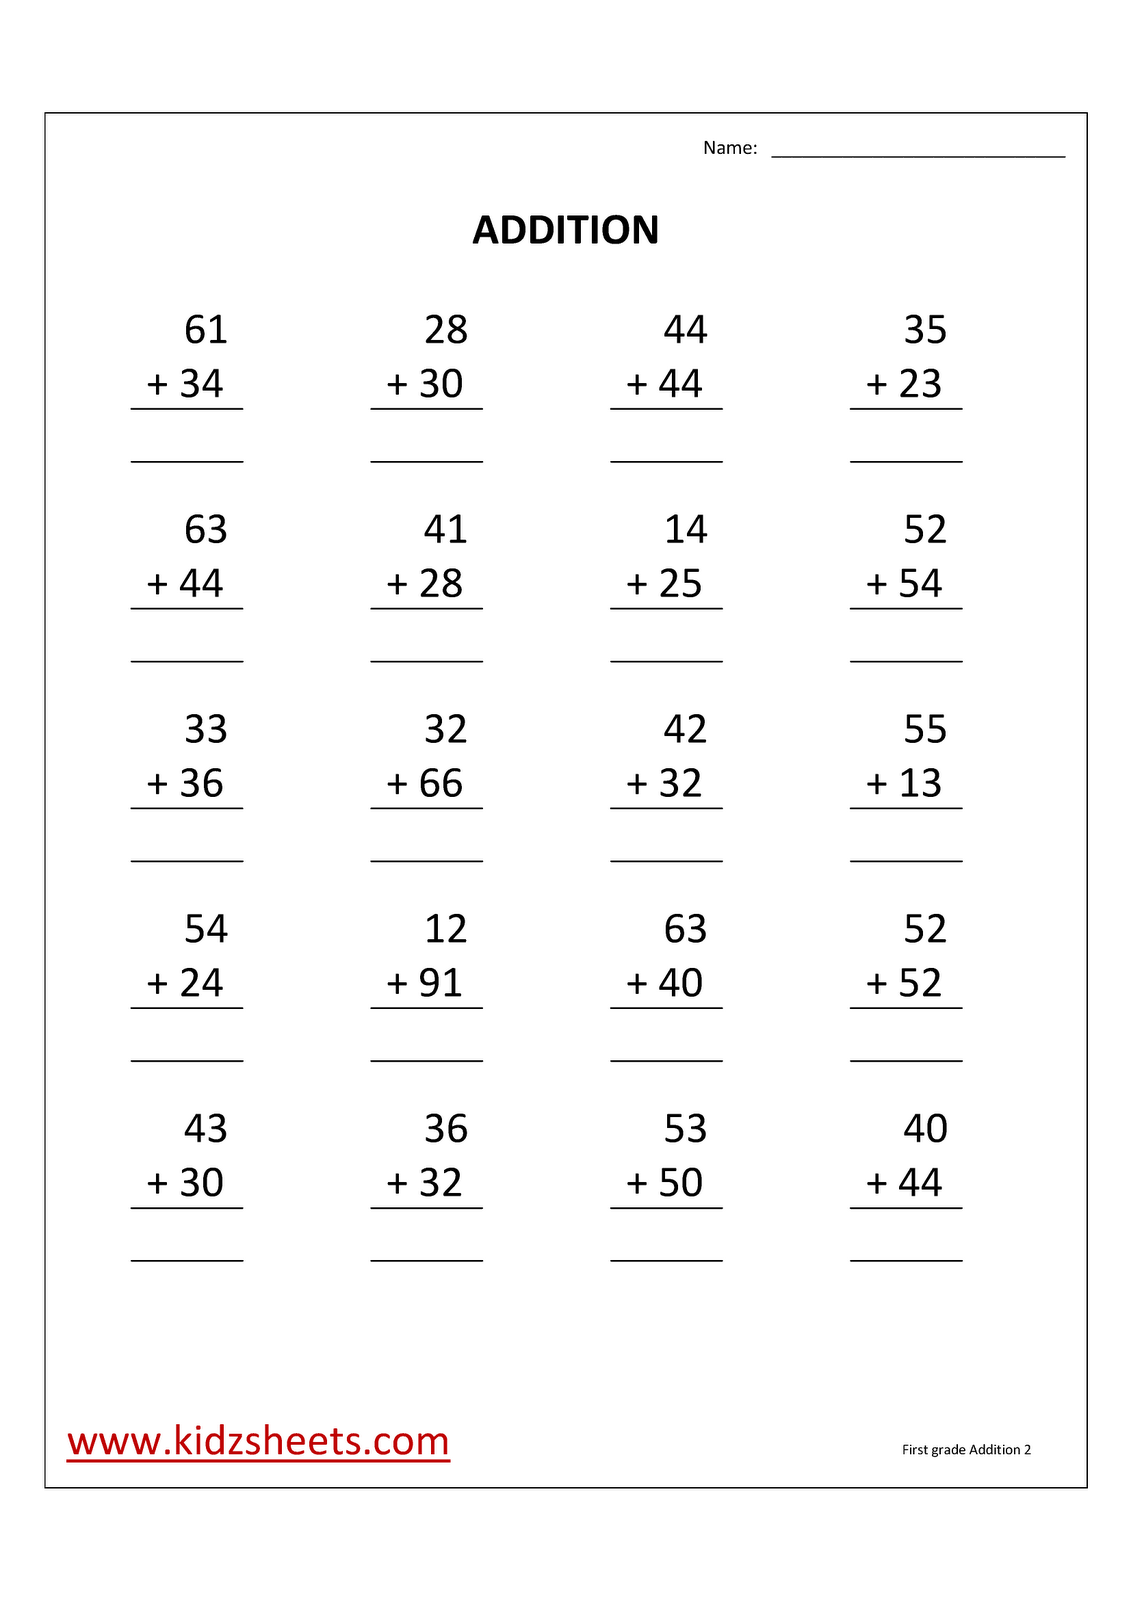 1St Grade Addition Worksheets – 1st Grade Addition Worksheets Printable